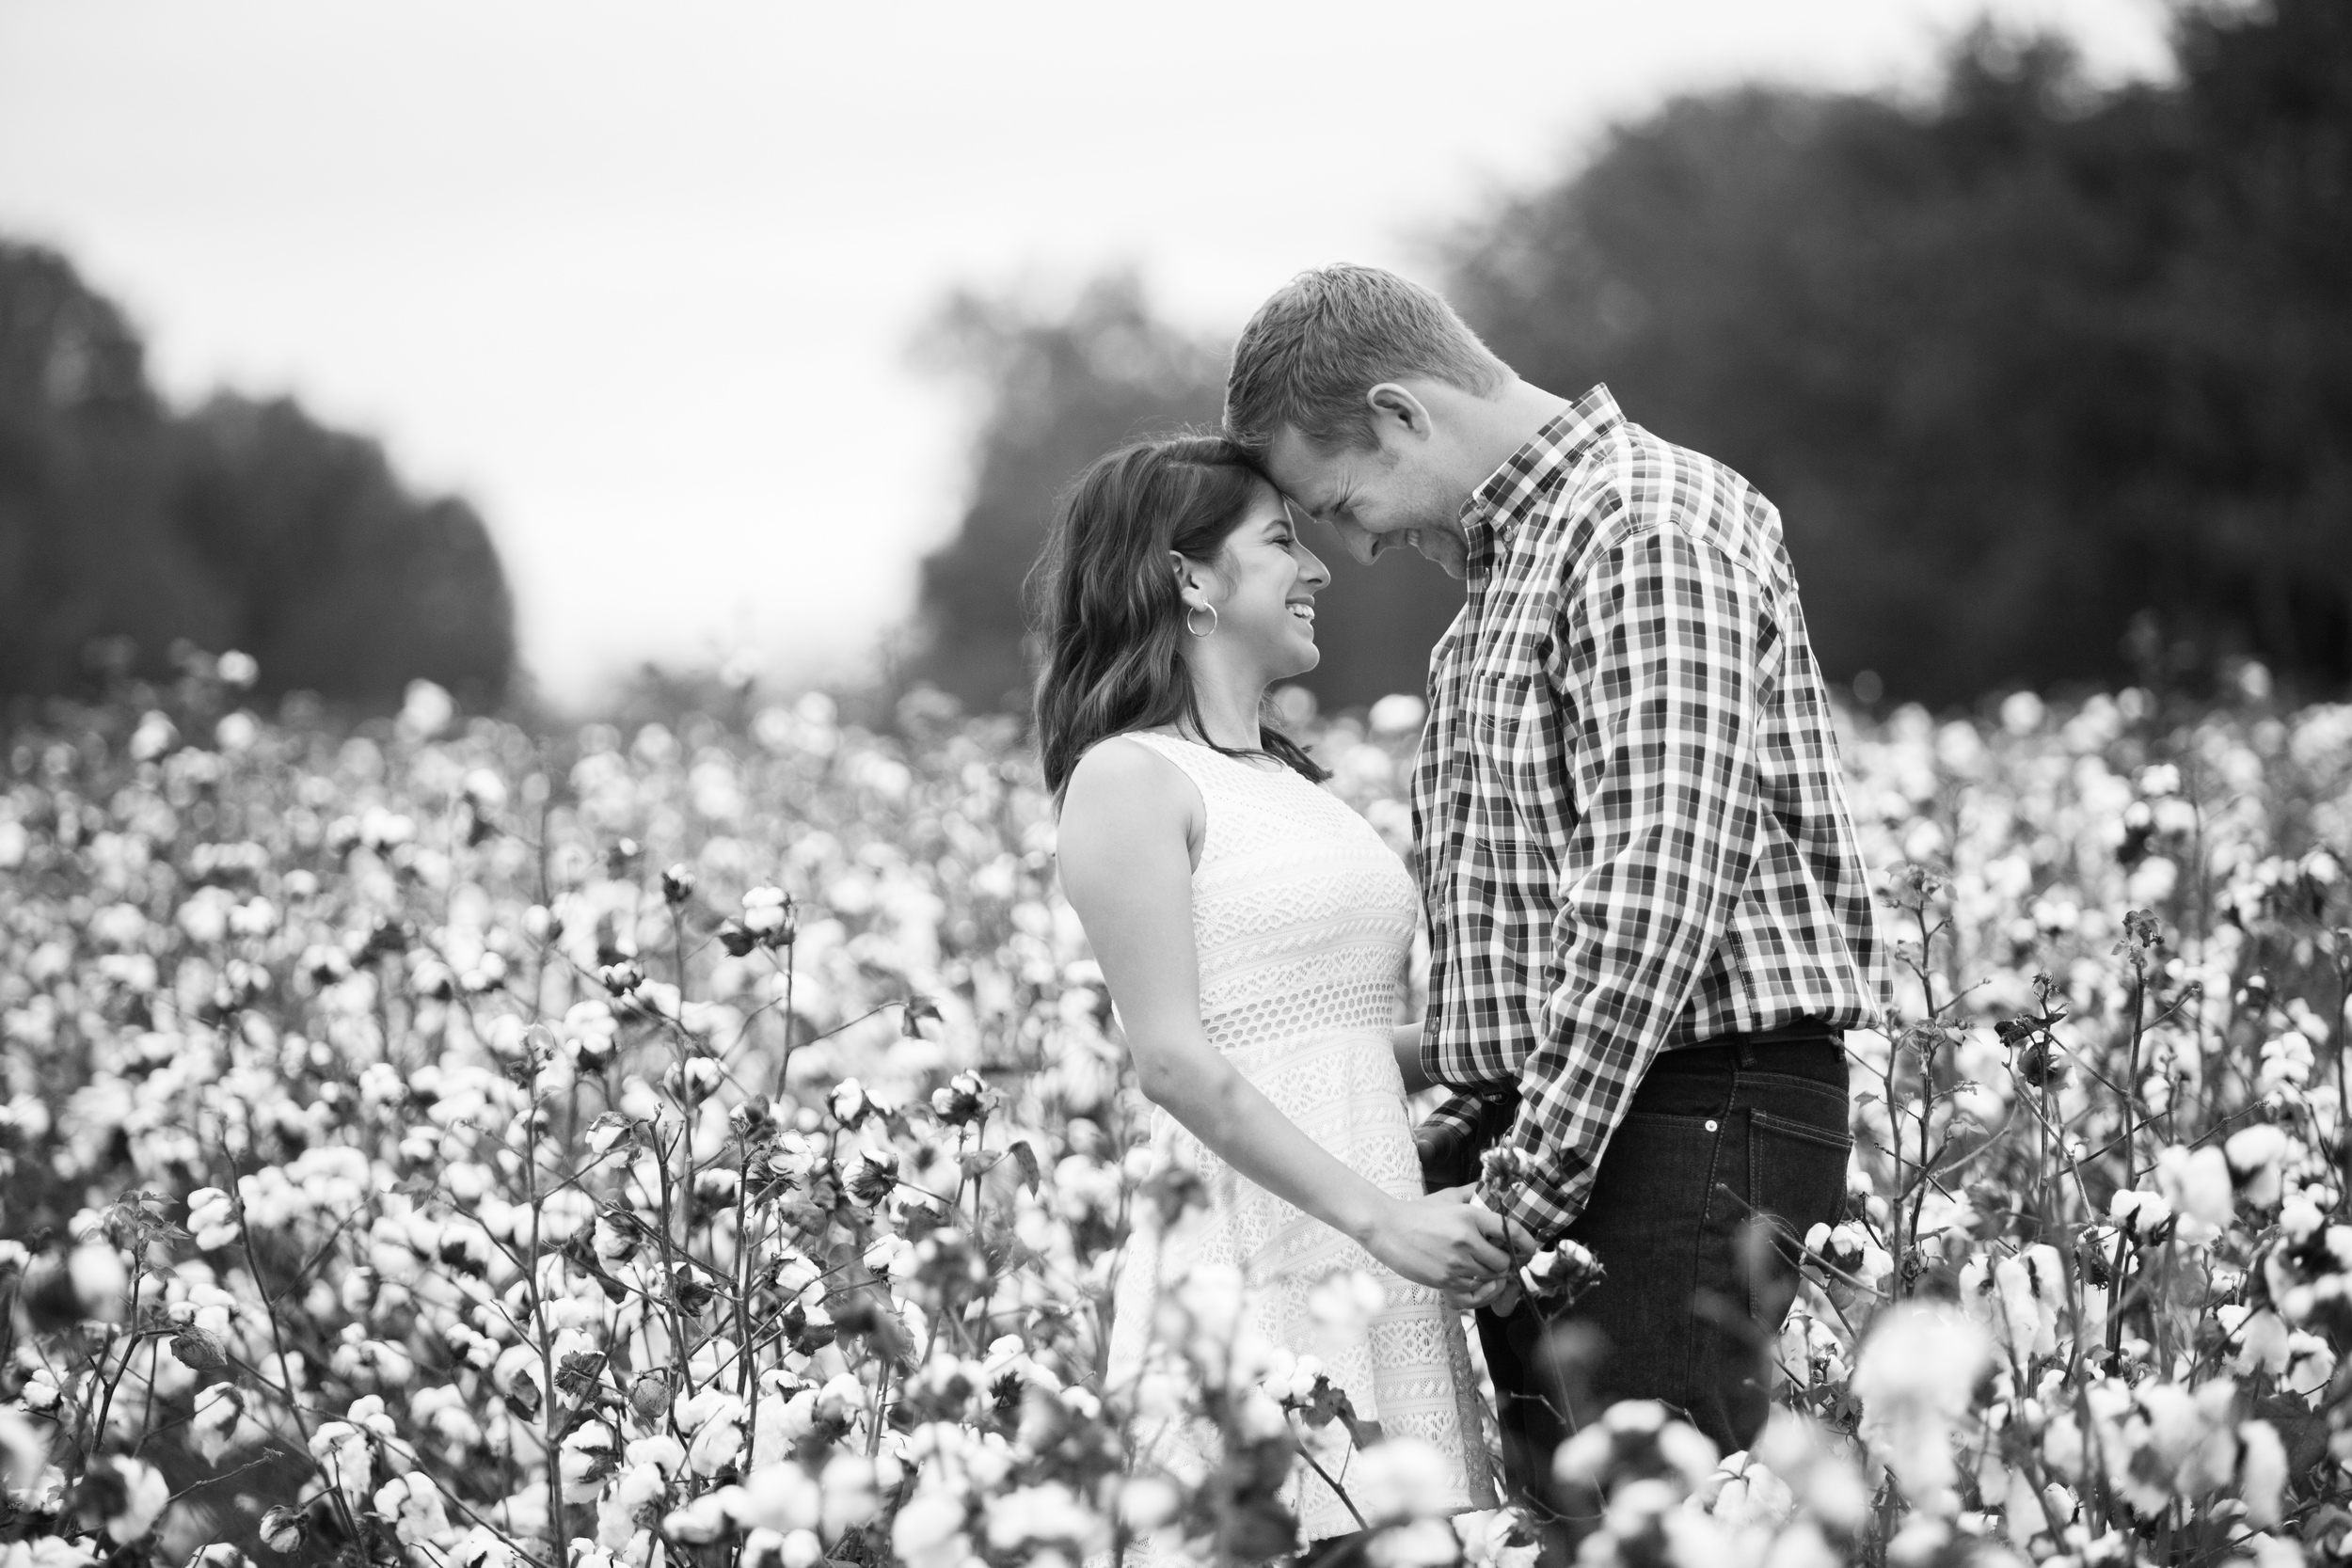 Selma-Alabama-Wedding-Photography-Engagements-Jessica-George-24.jpg